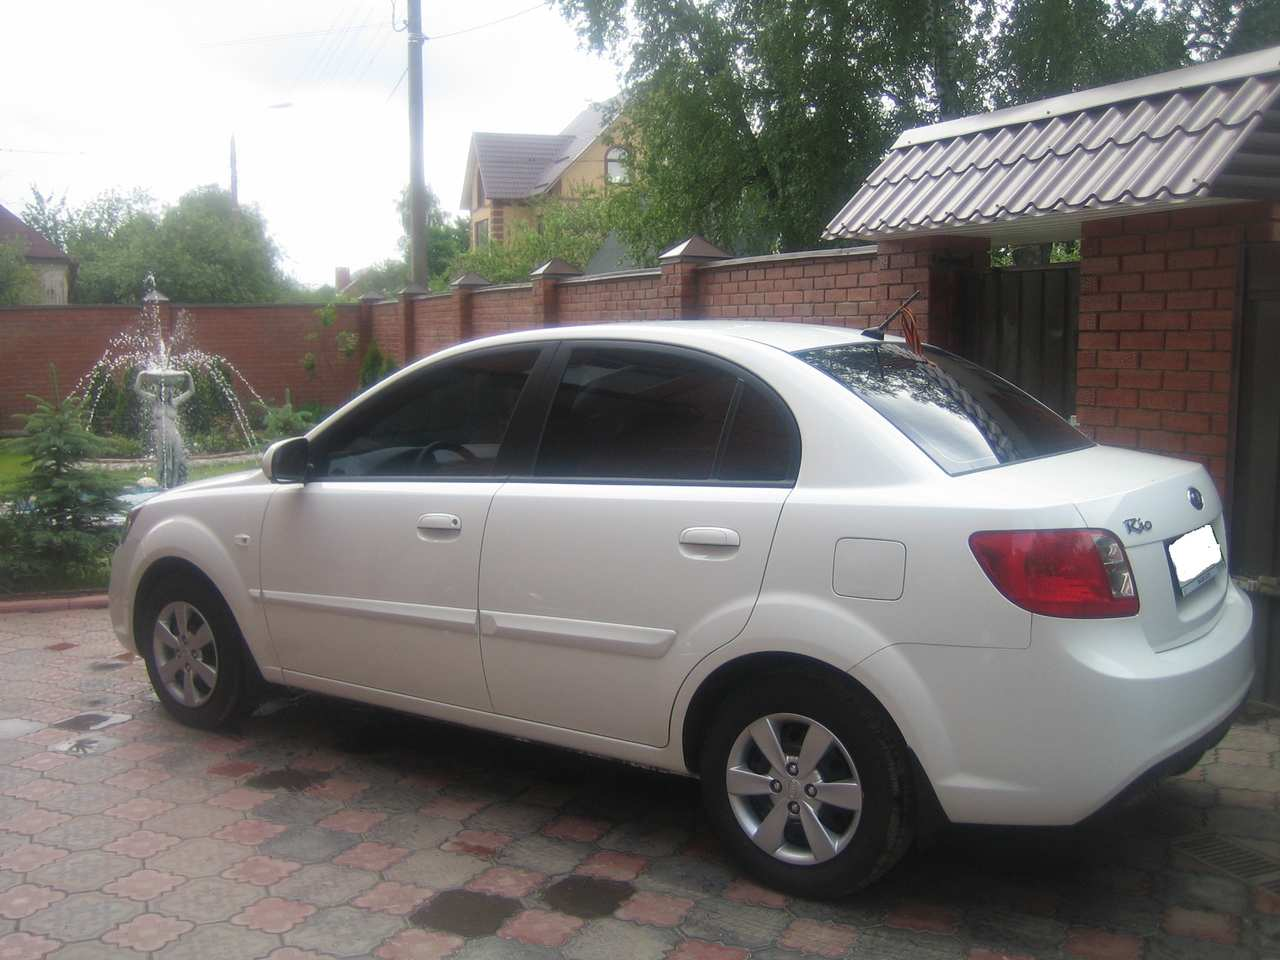 Kia Rio 1.4 2010 photo - 8